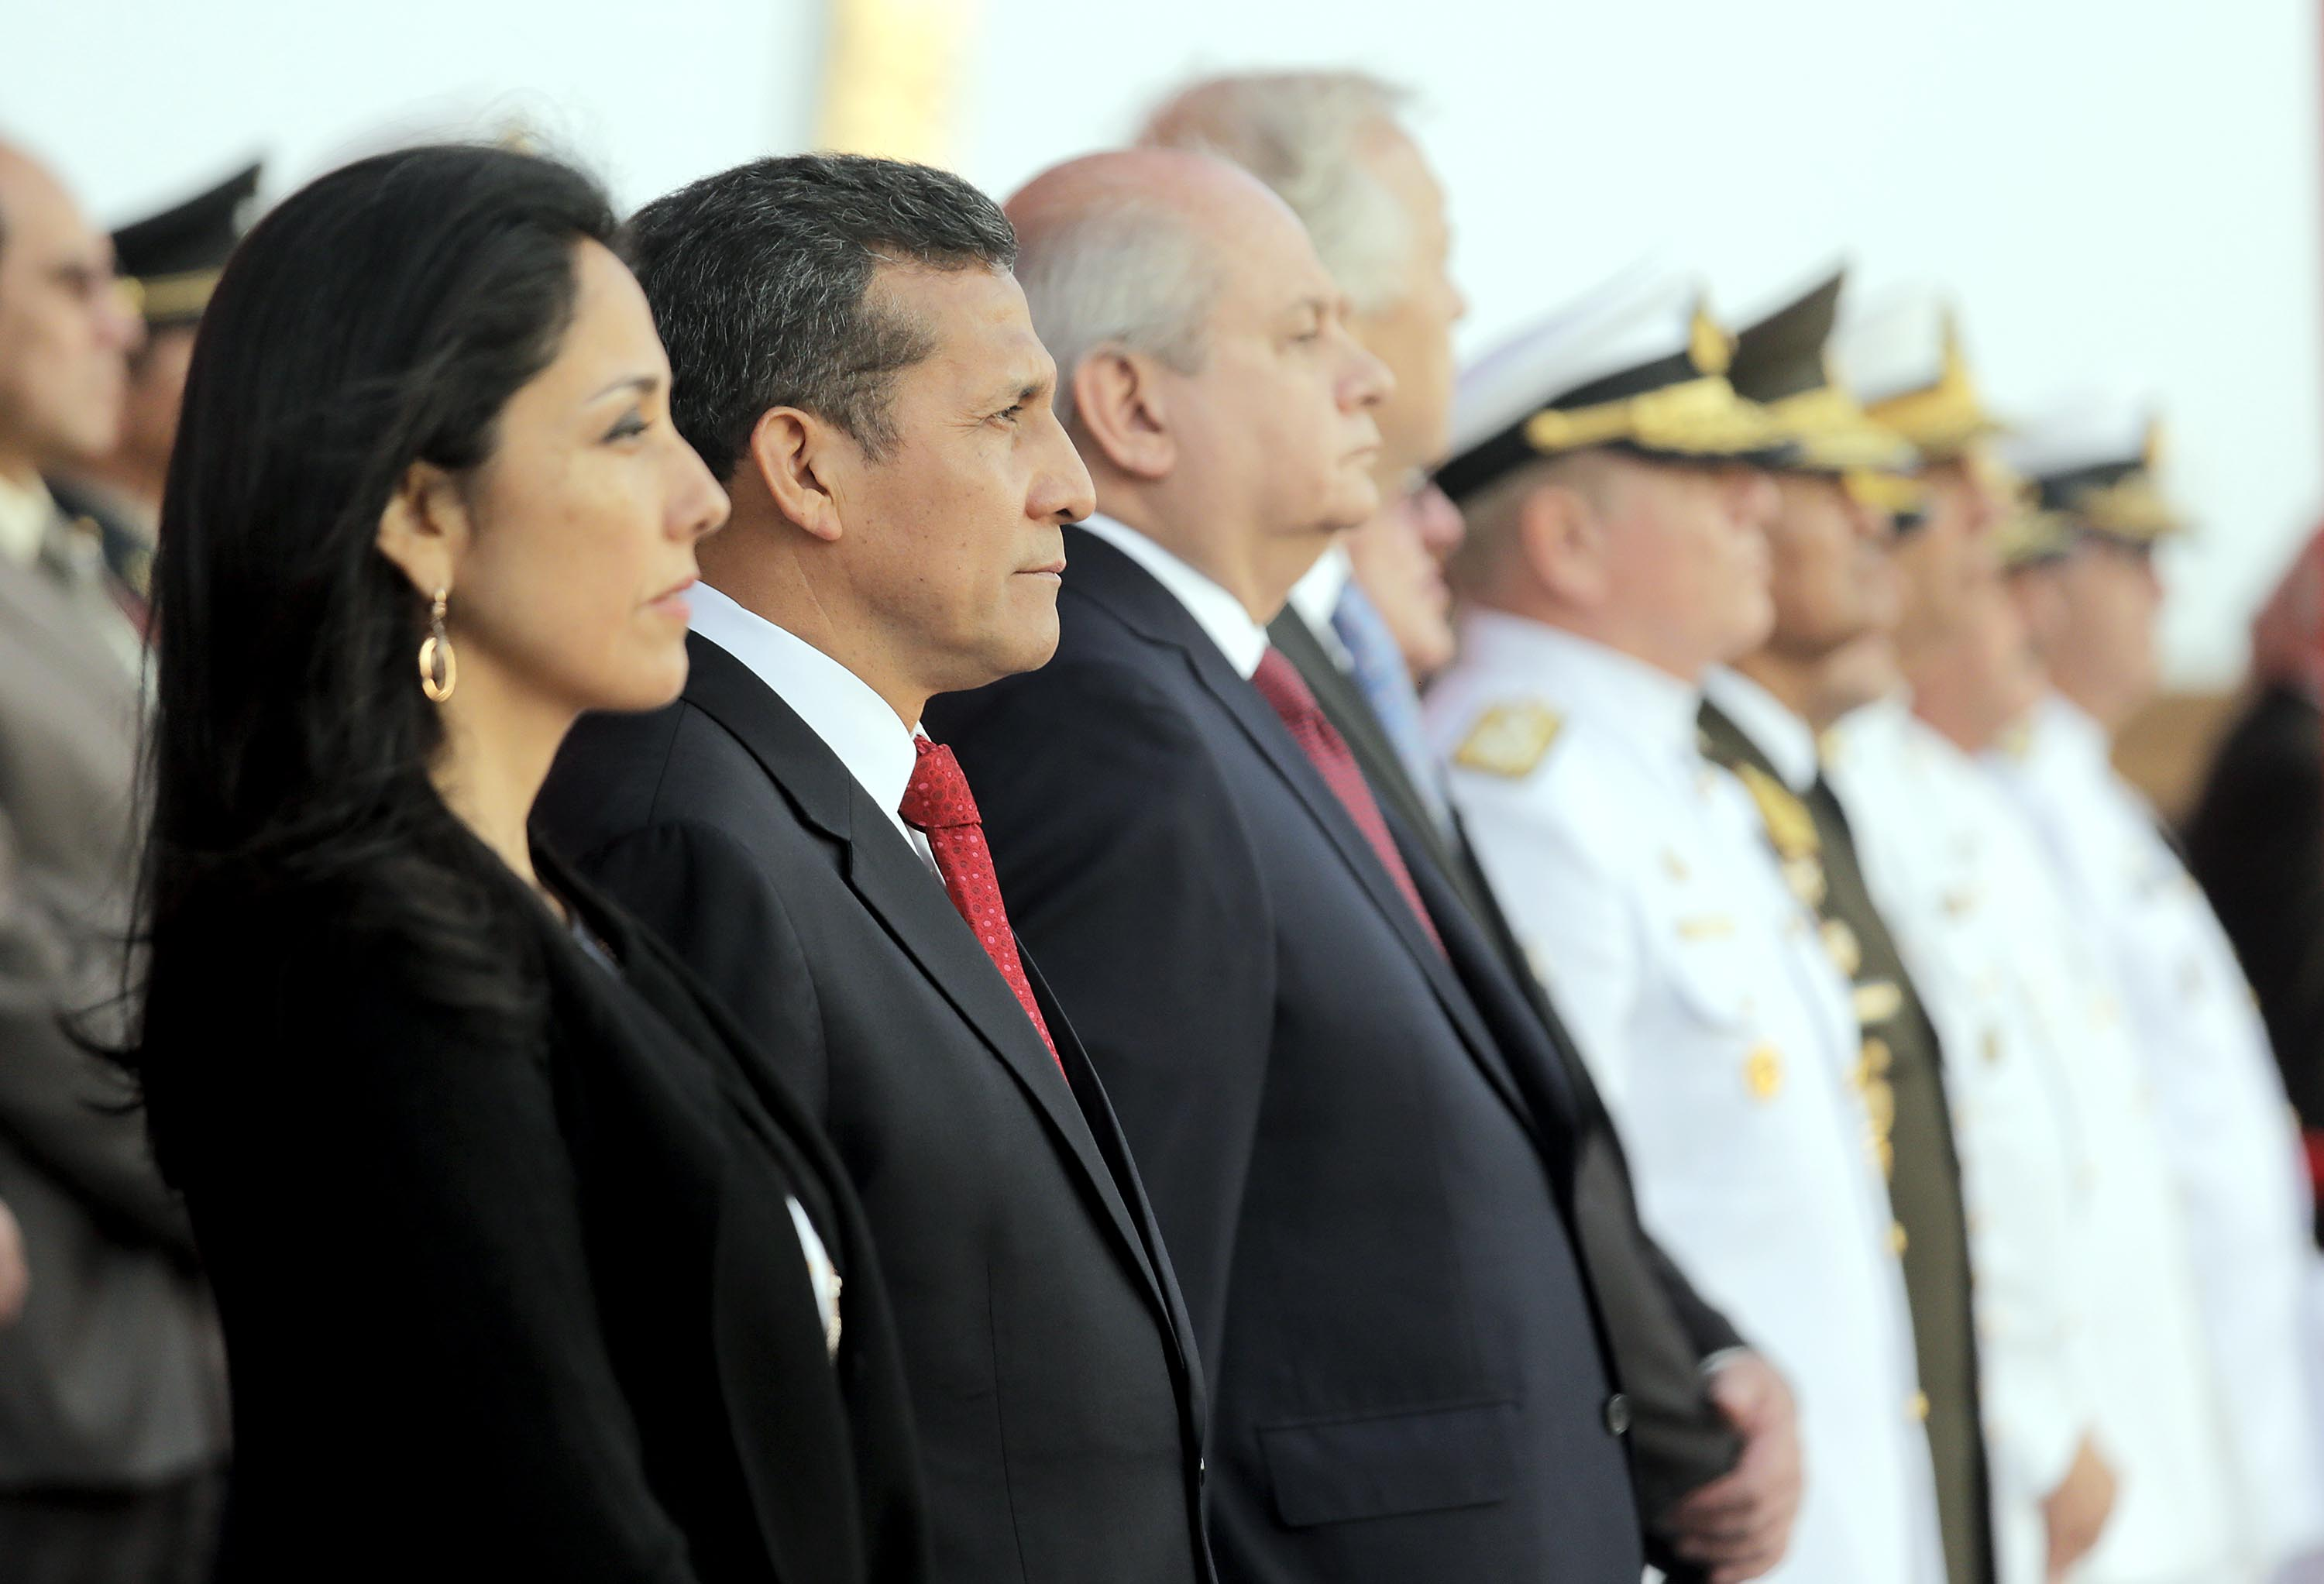 Ex-president Ollanta Humala and his wife Nadine Heredia released from prison